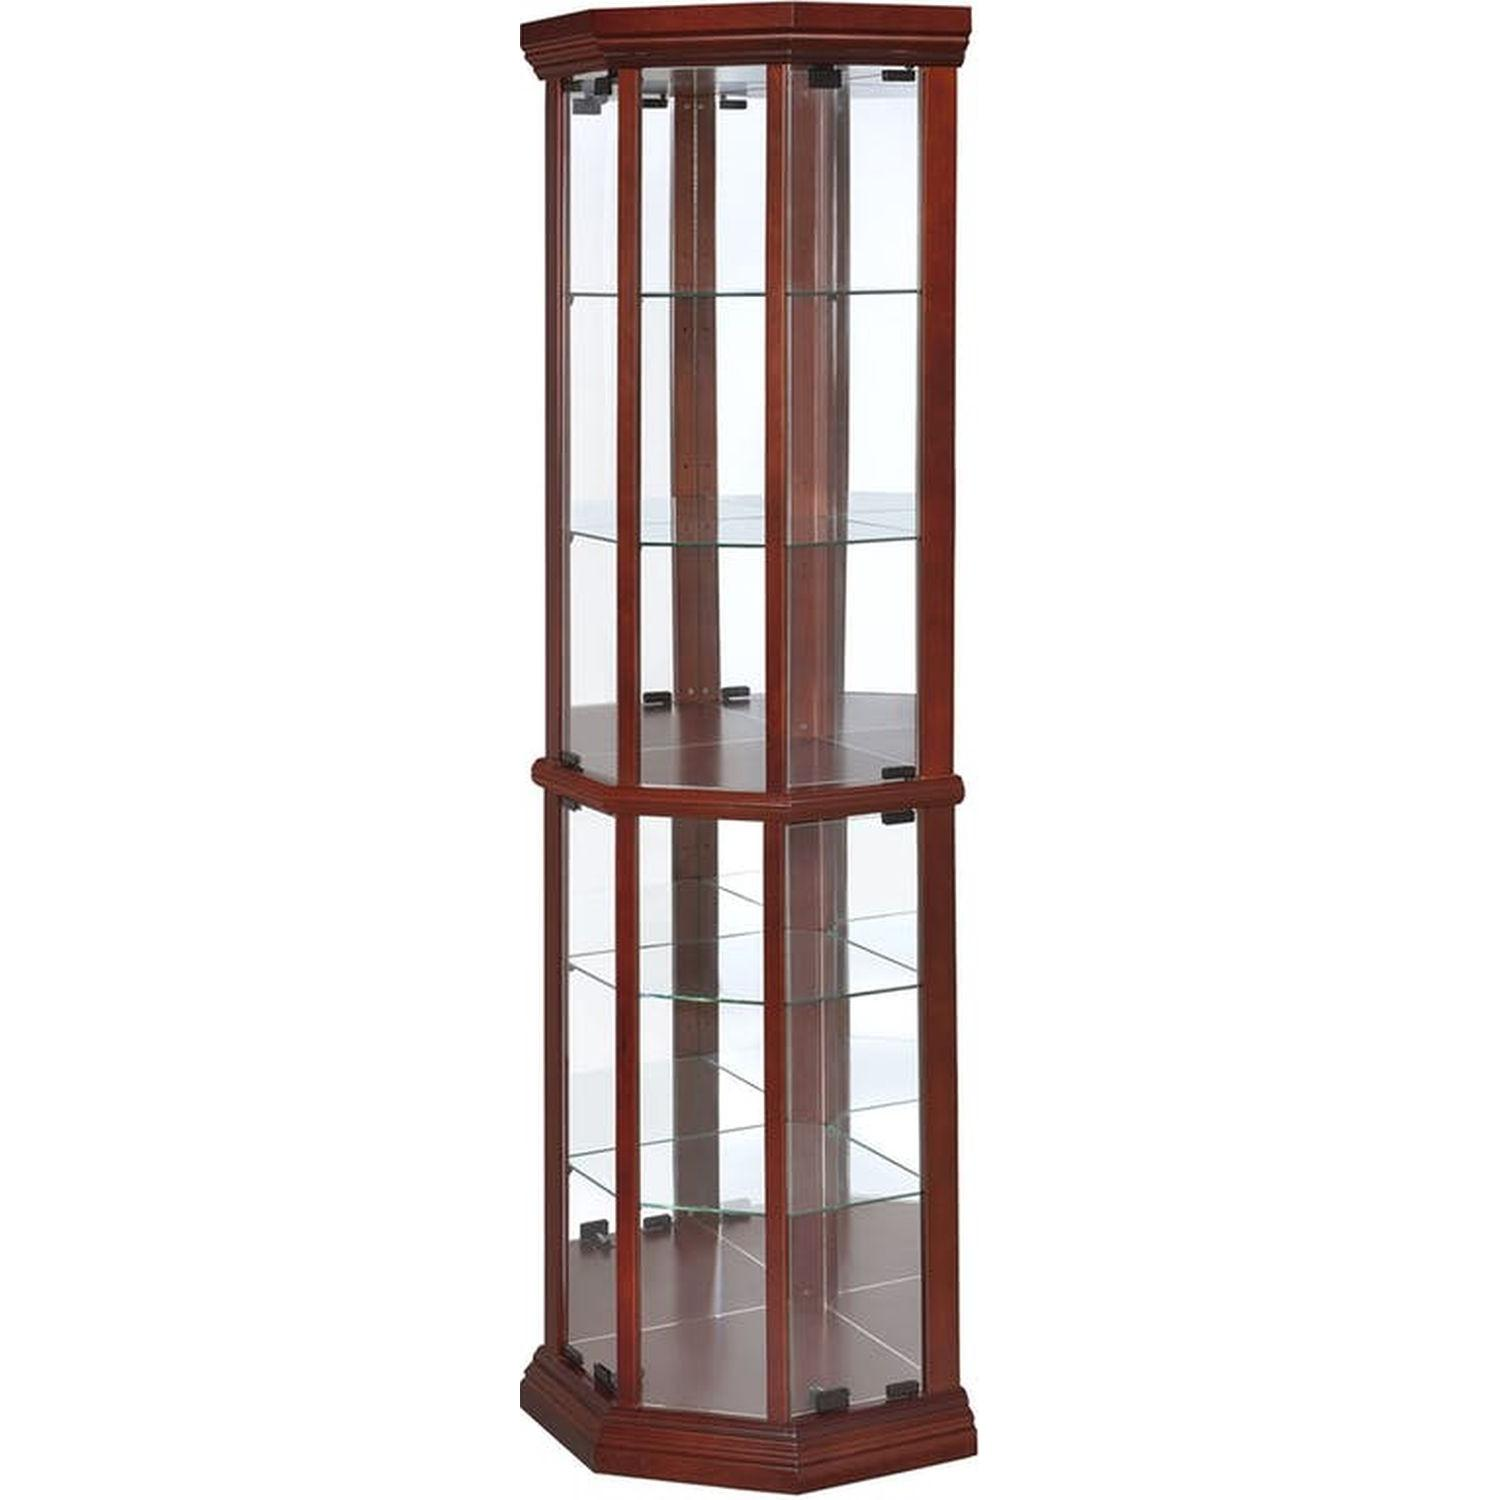 Curio Cabinet in Warm Brown w/ Glass Panels - image-1